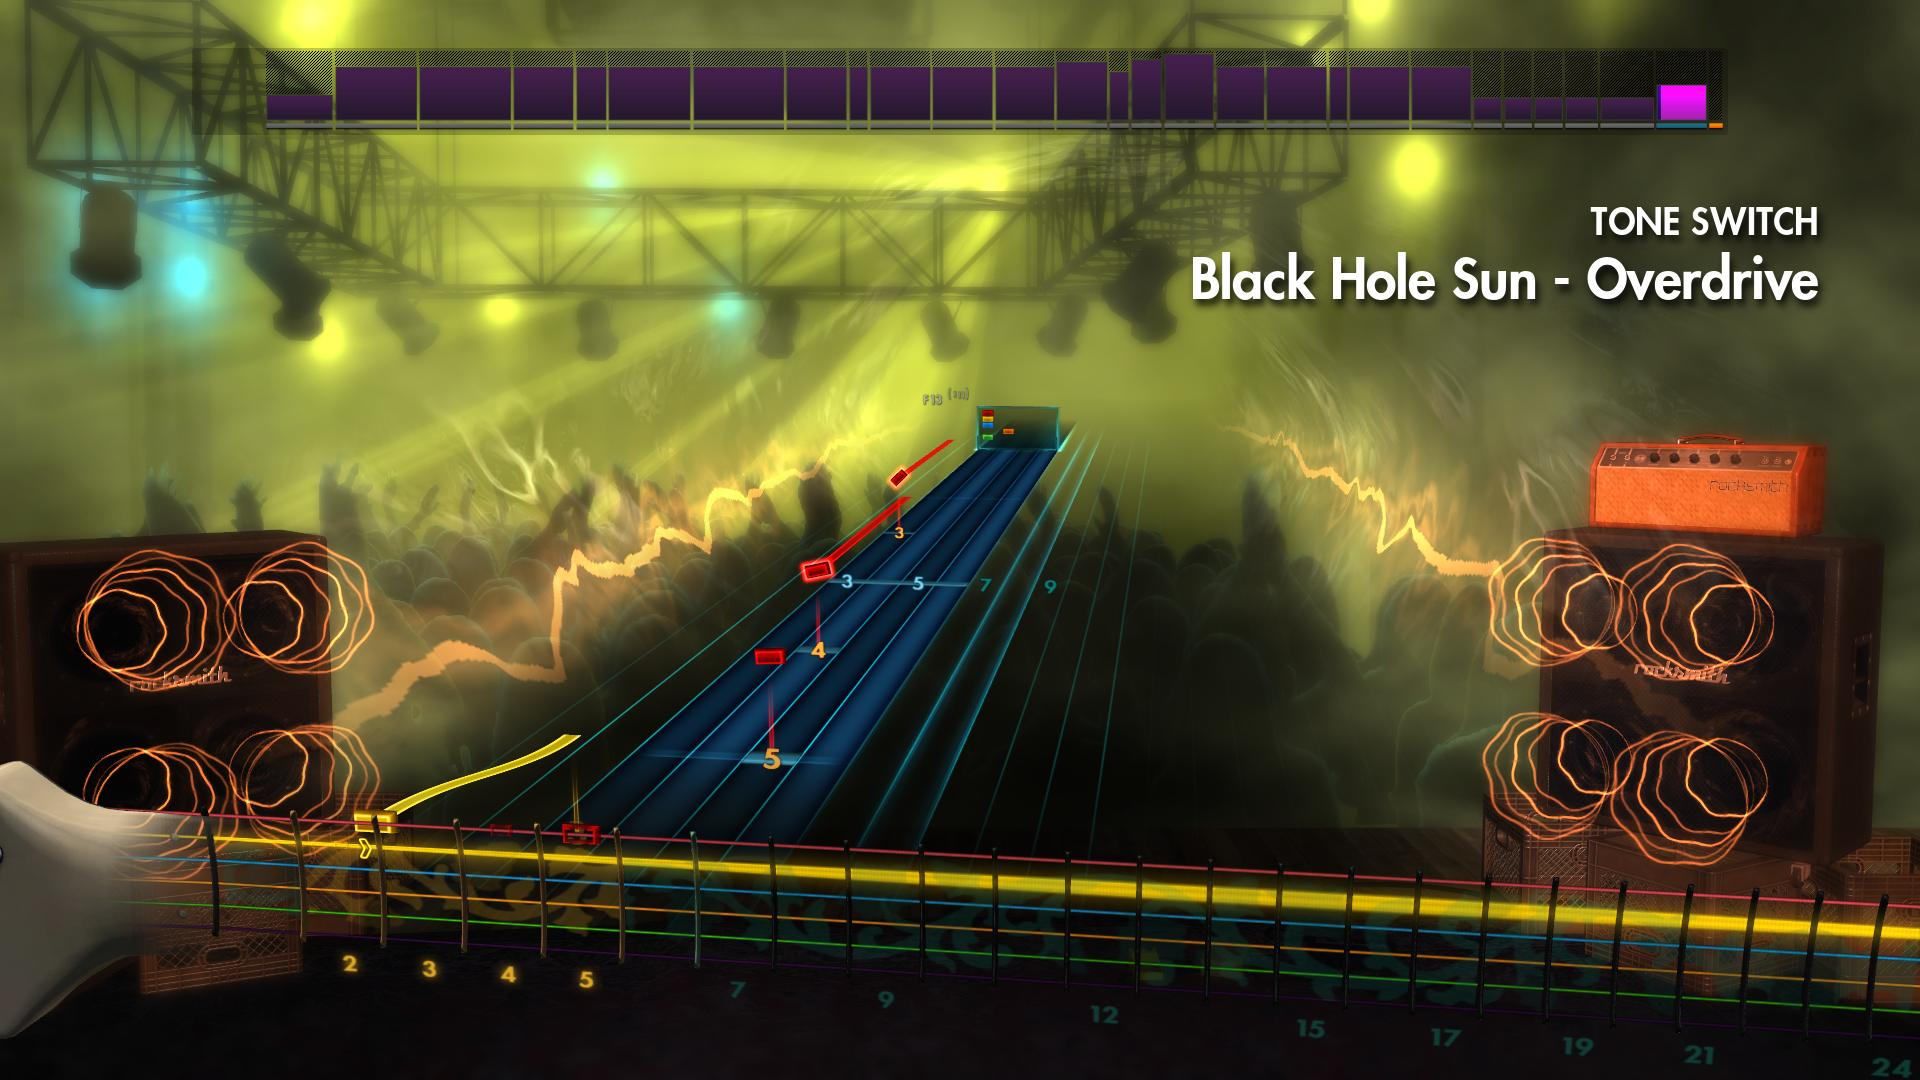 Black Holes and Revelations was met with positive reviews from critics Metacritic which assigns a normalized rating based on a range of reviews from mainstream